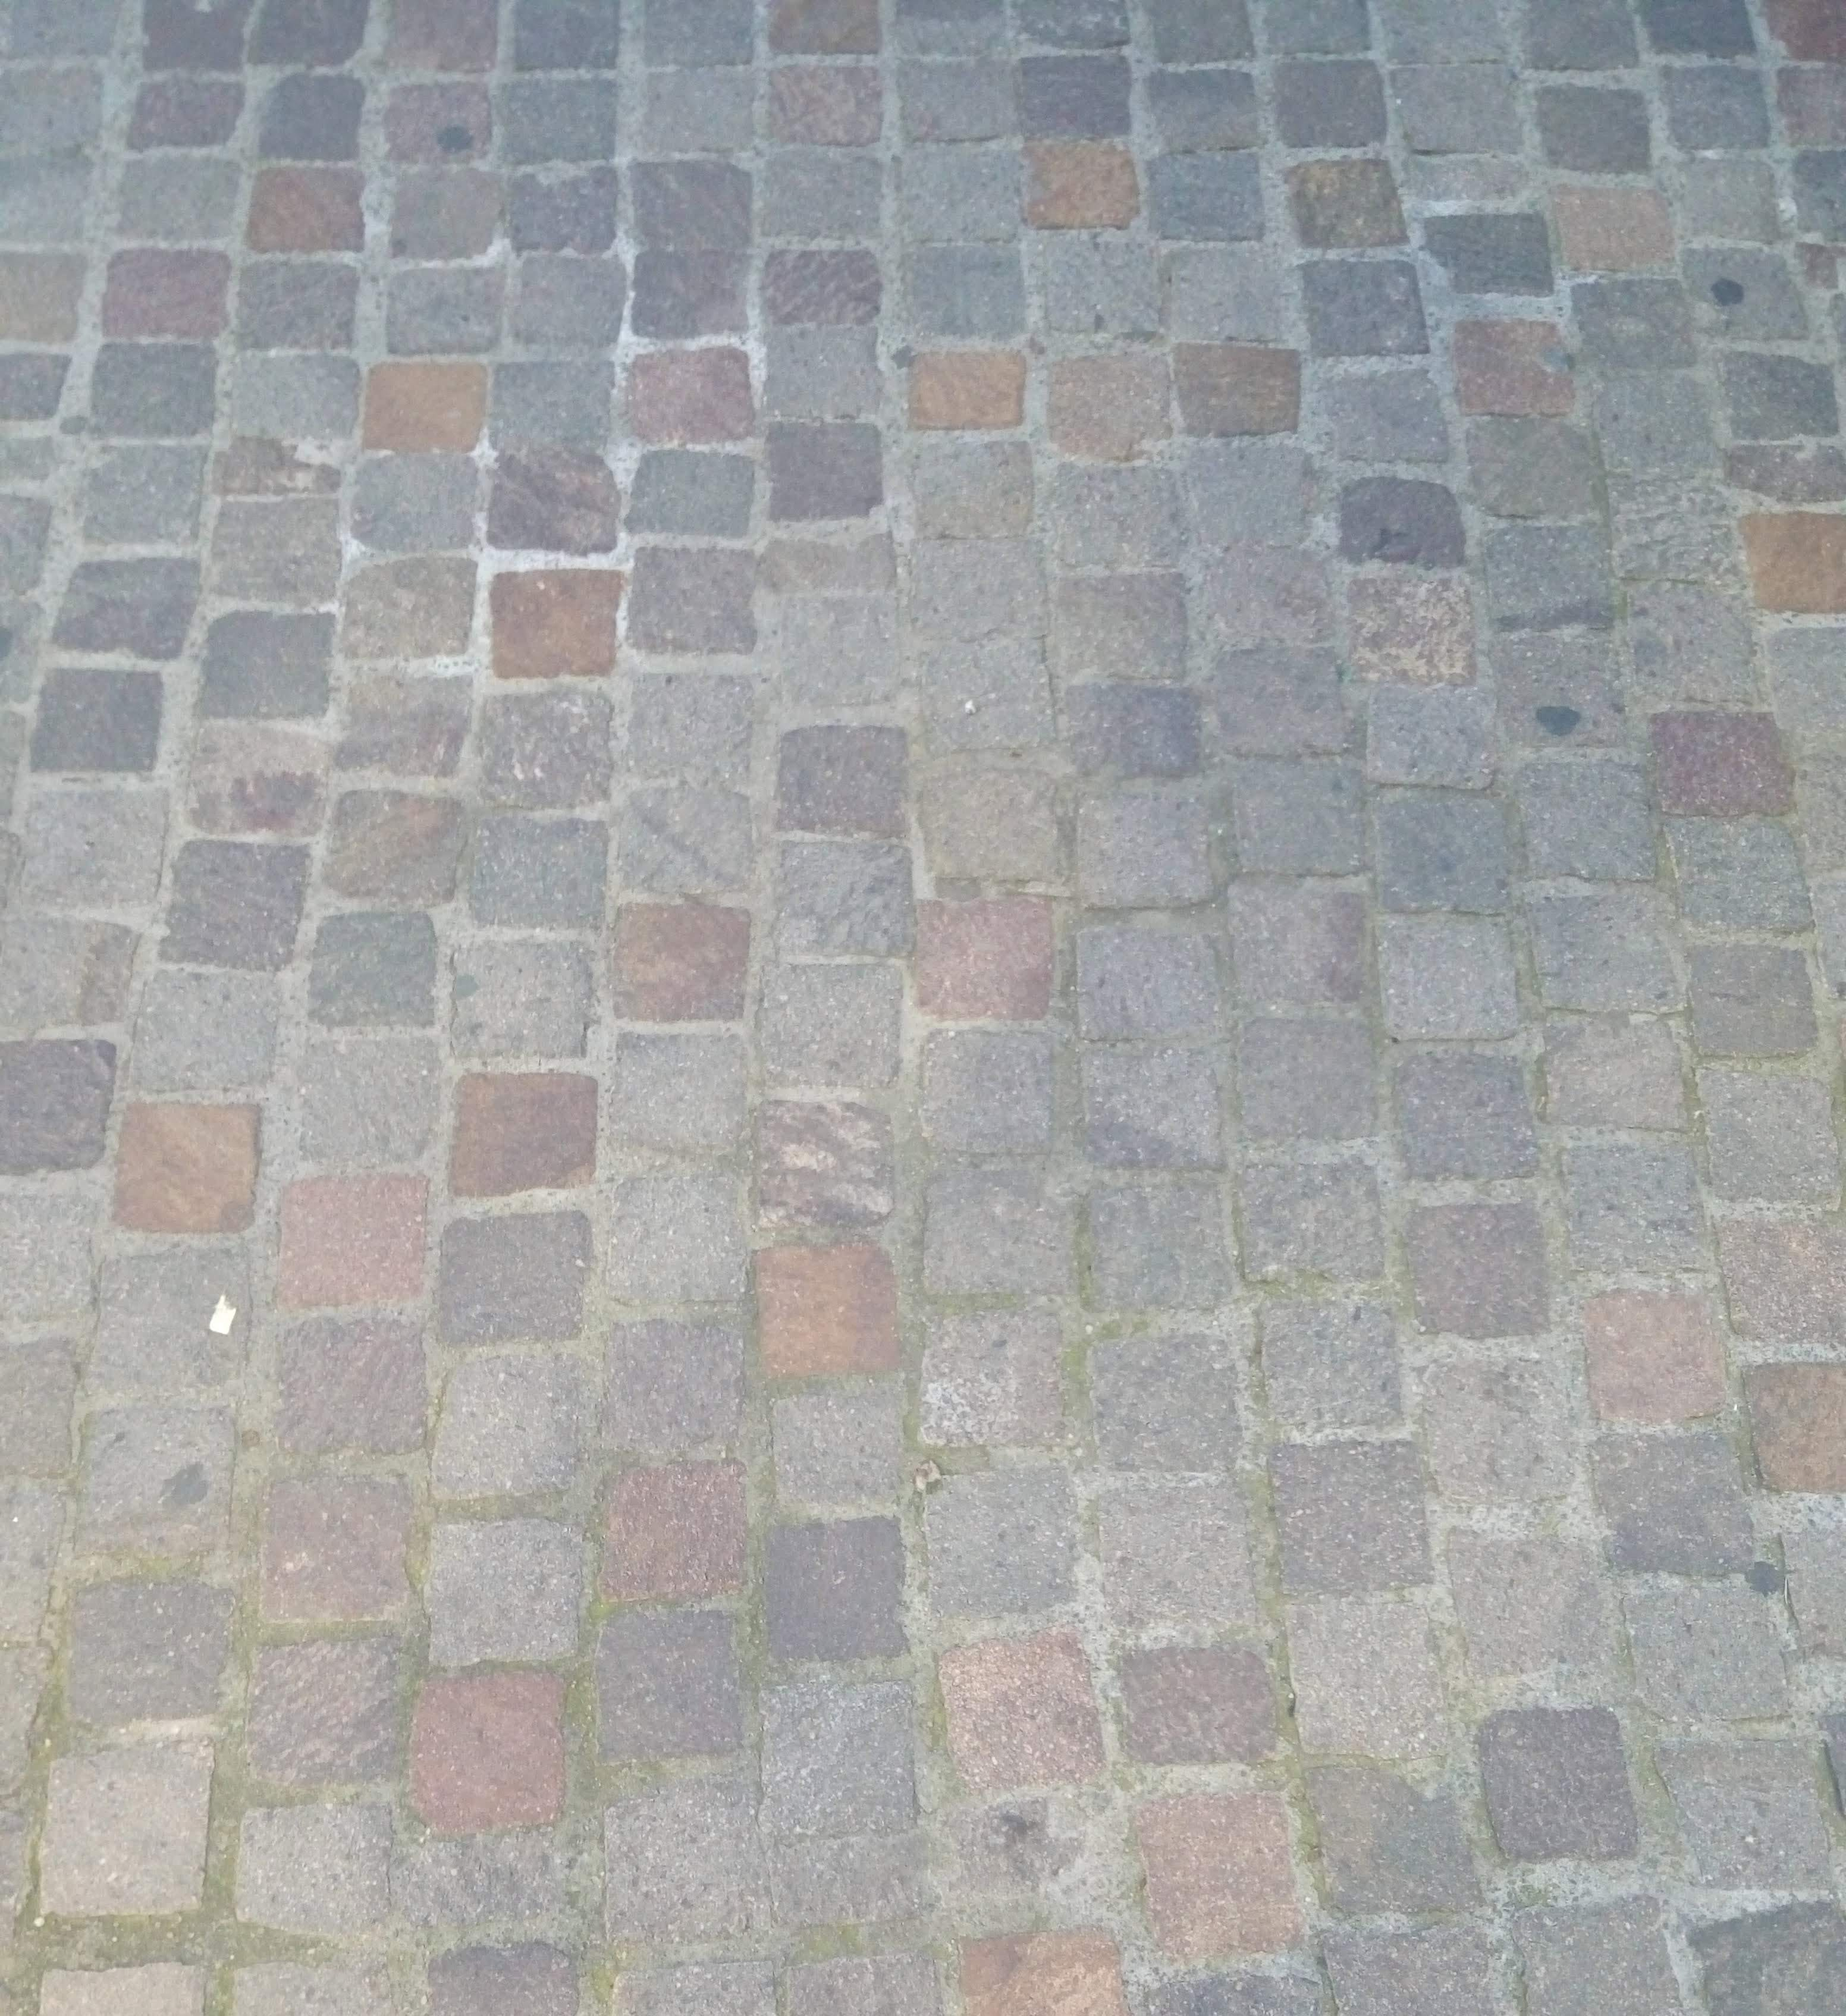 Free stock photo of outdoor, pattern, tiles